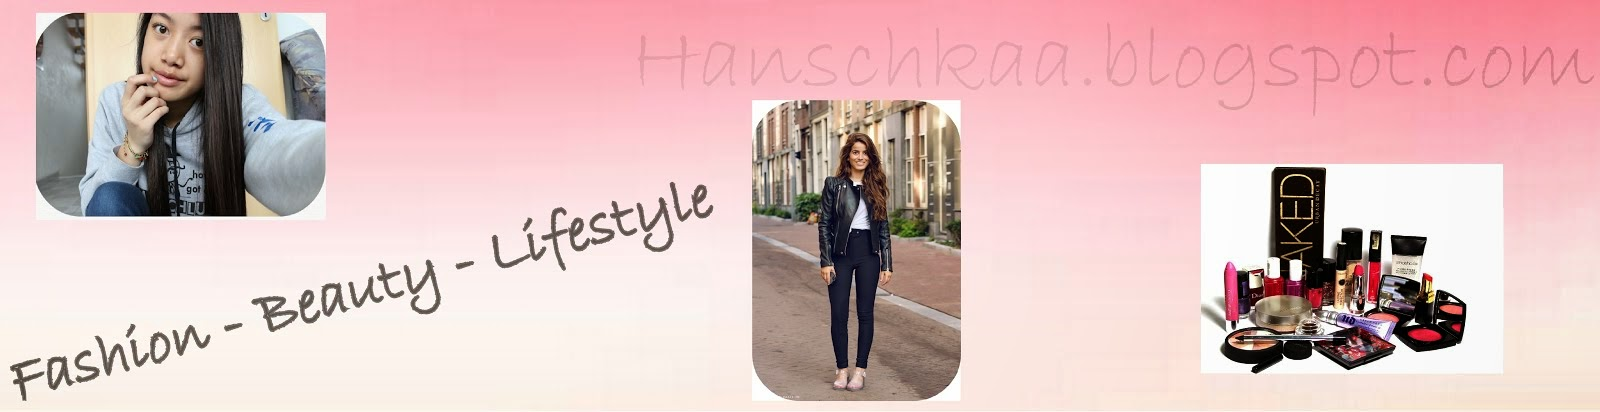 Hanschka - Fashion & Beauty & Lifestyle